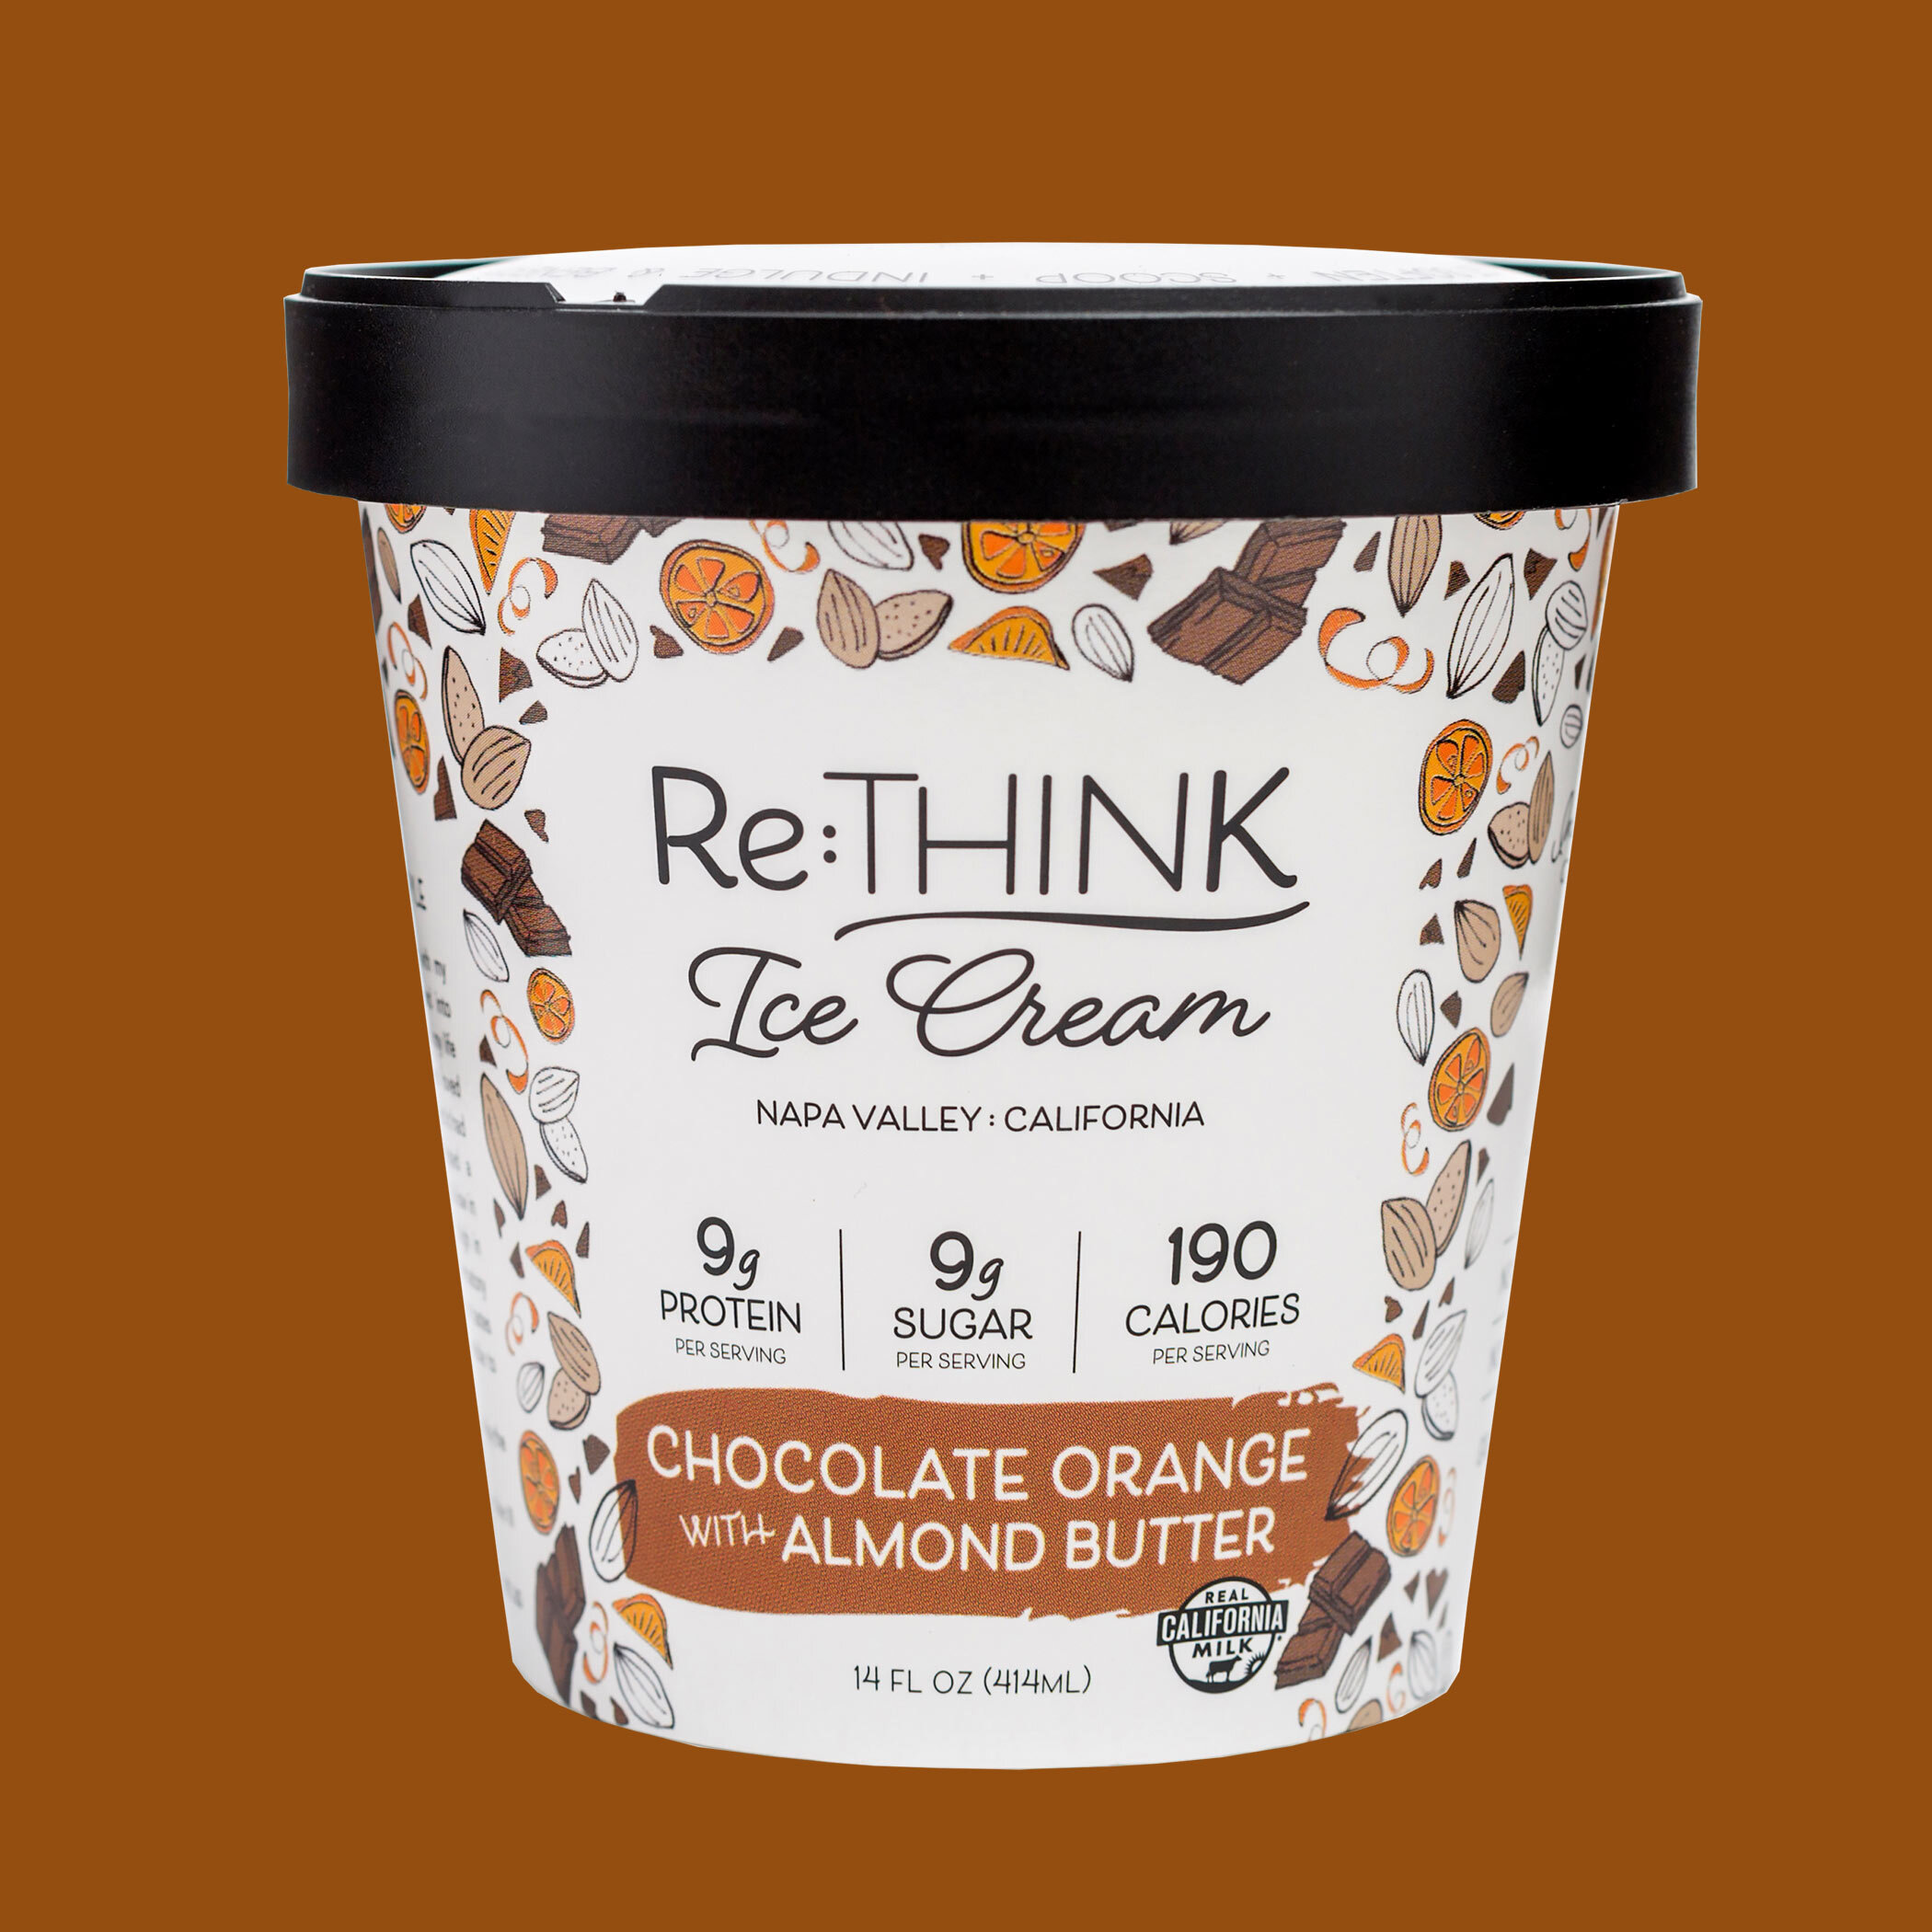 Chocolate Orange with Almond Butter - Featuring decadent chocolate flakes swimming in creamy chocolate-orange ice cream ribboned with almond butter.